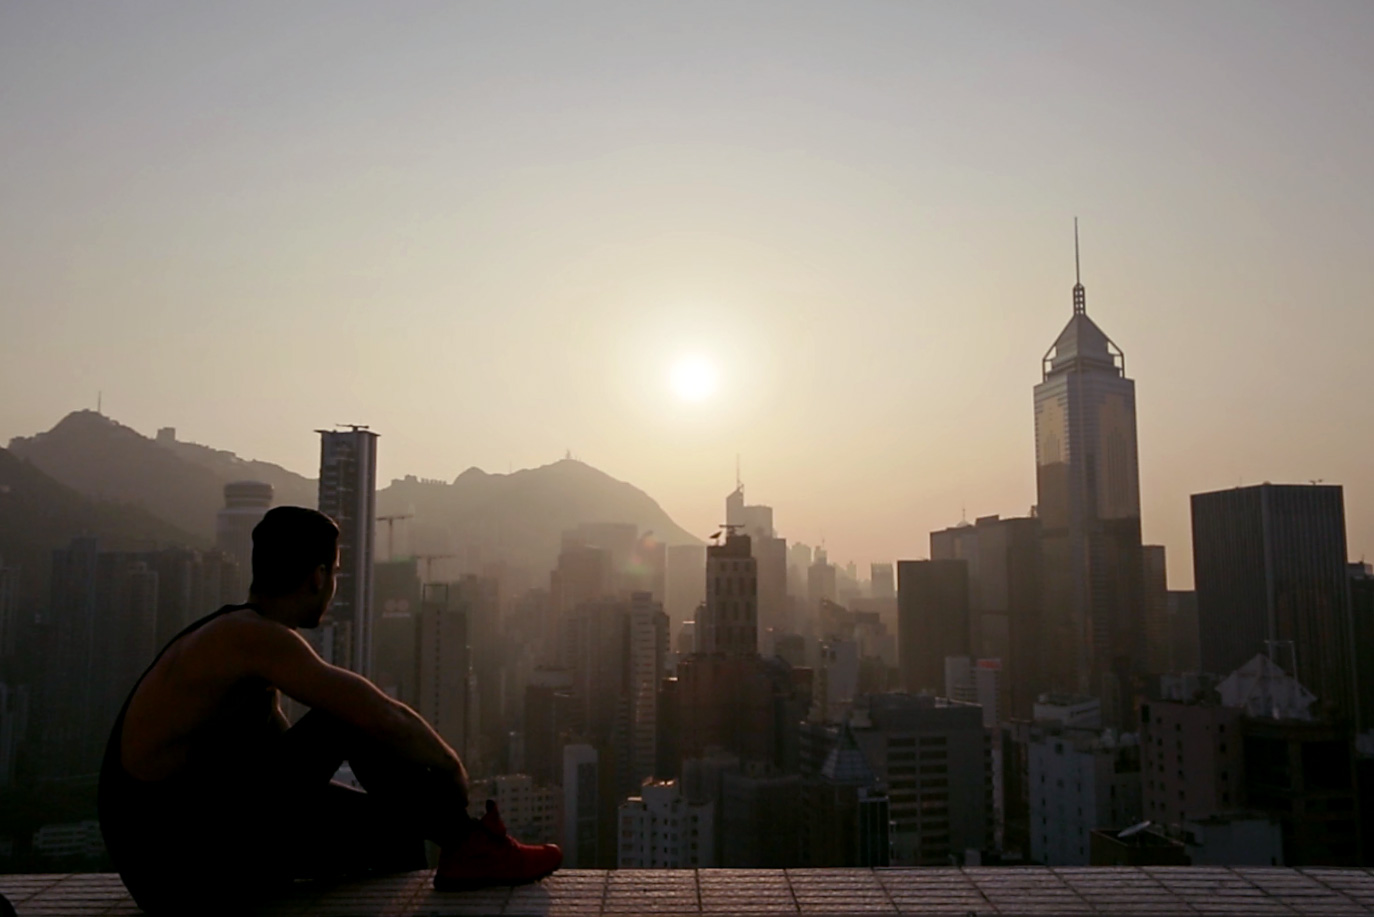 Exploring Hong Kong with Palladium Boots